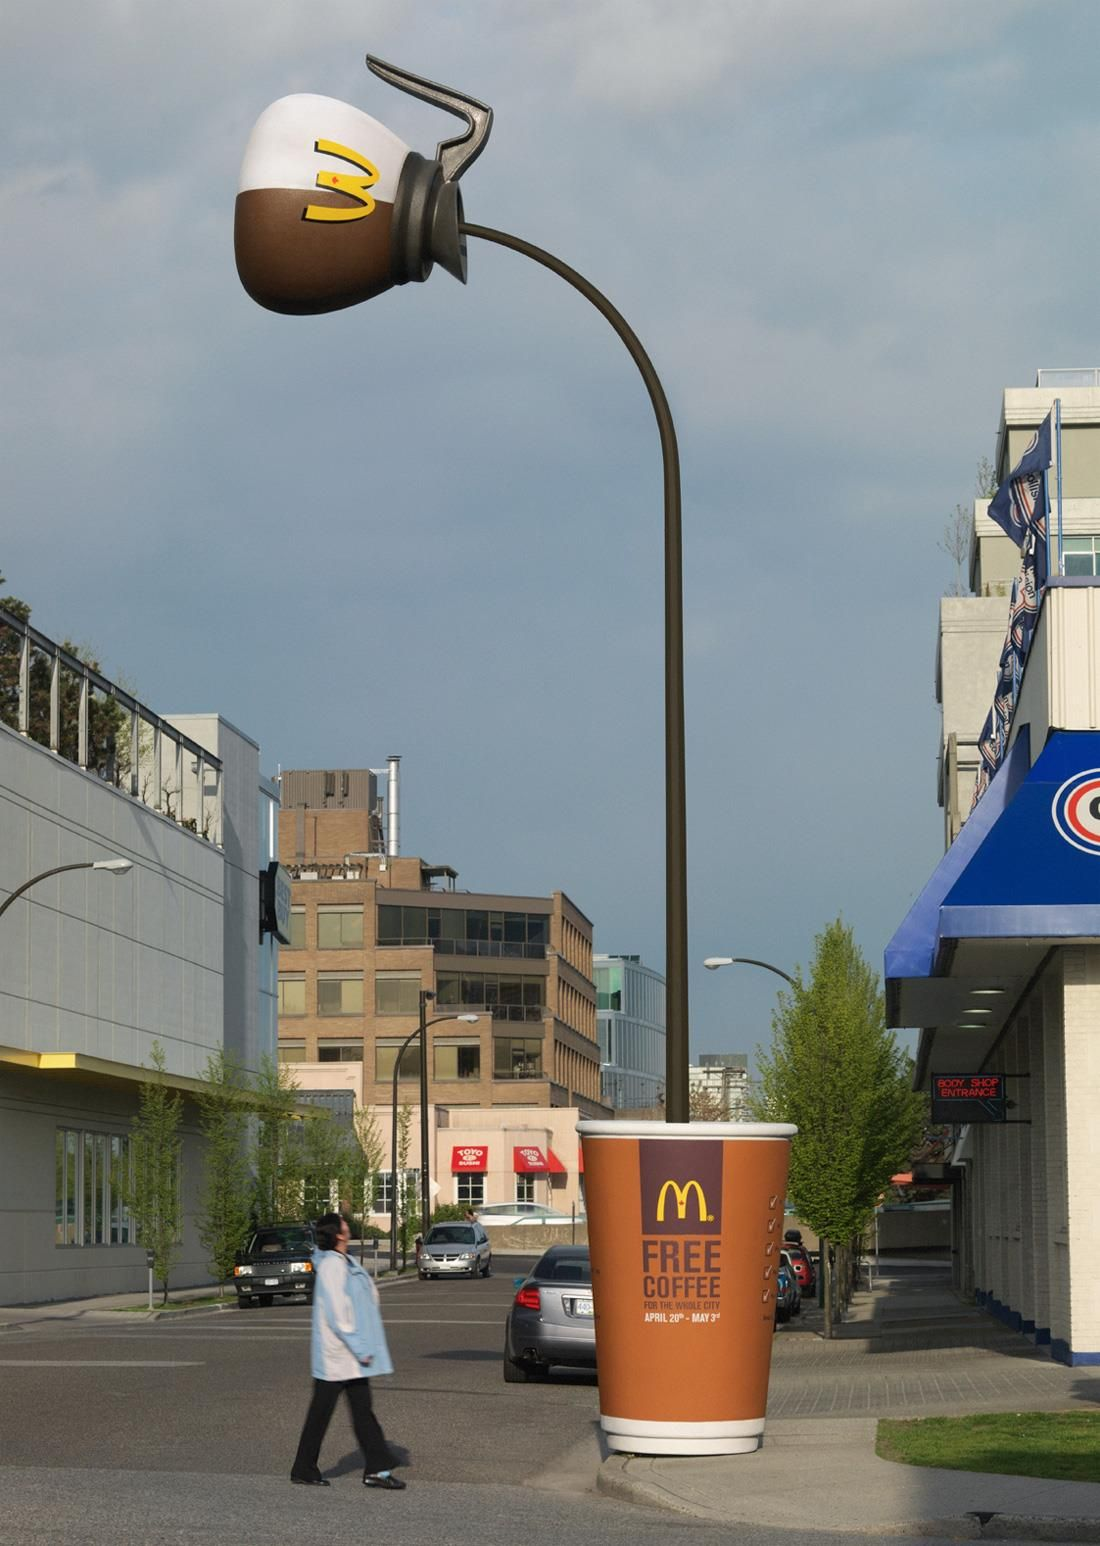 Not a fan of Micky Ds, but this is one of the best outdoor ads ever ...